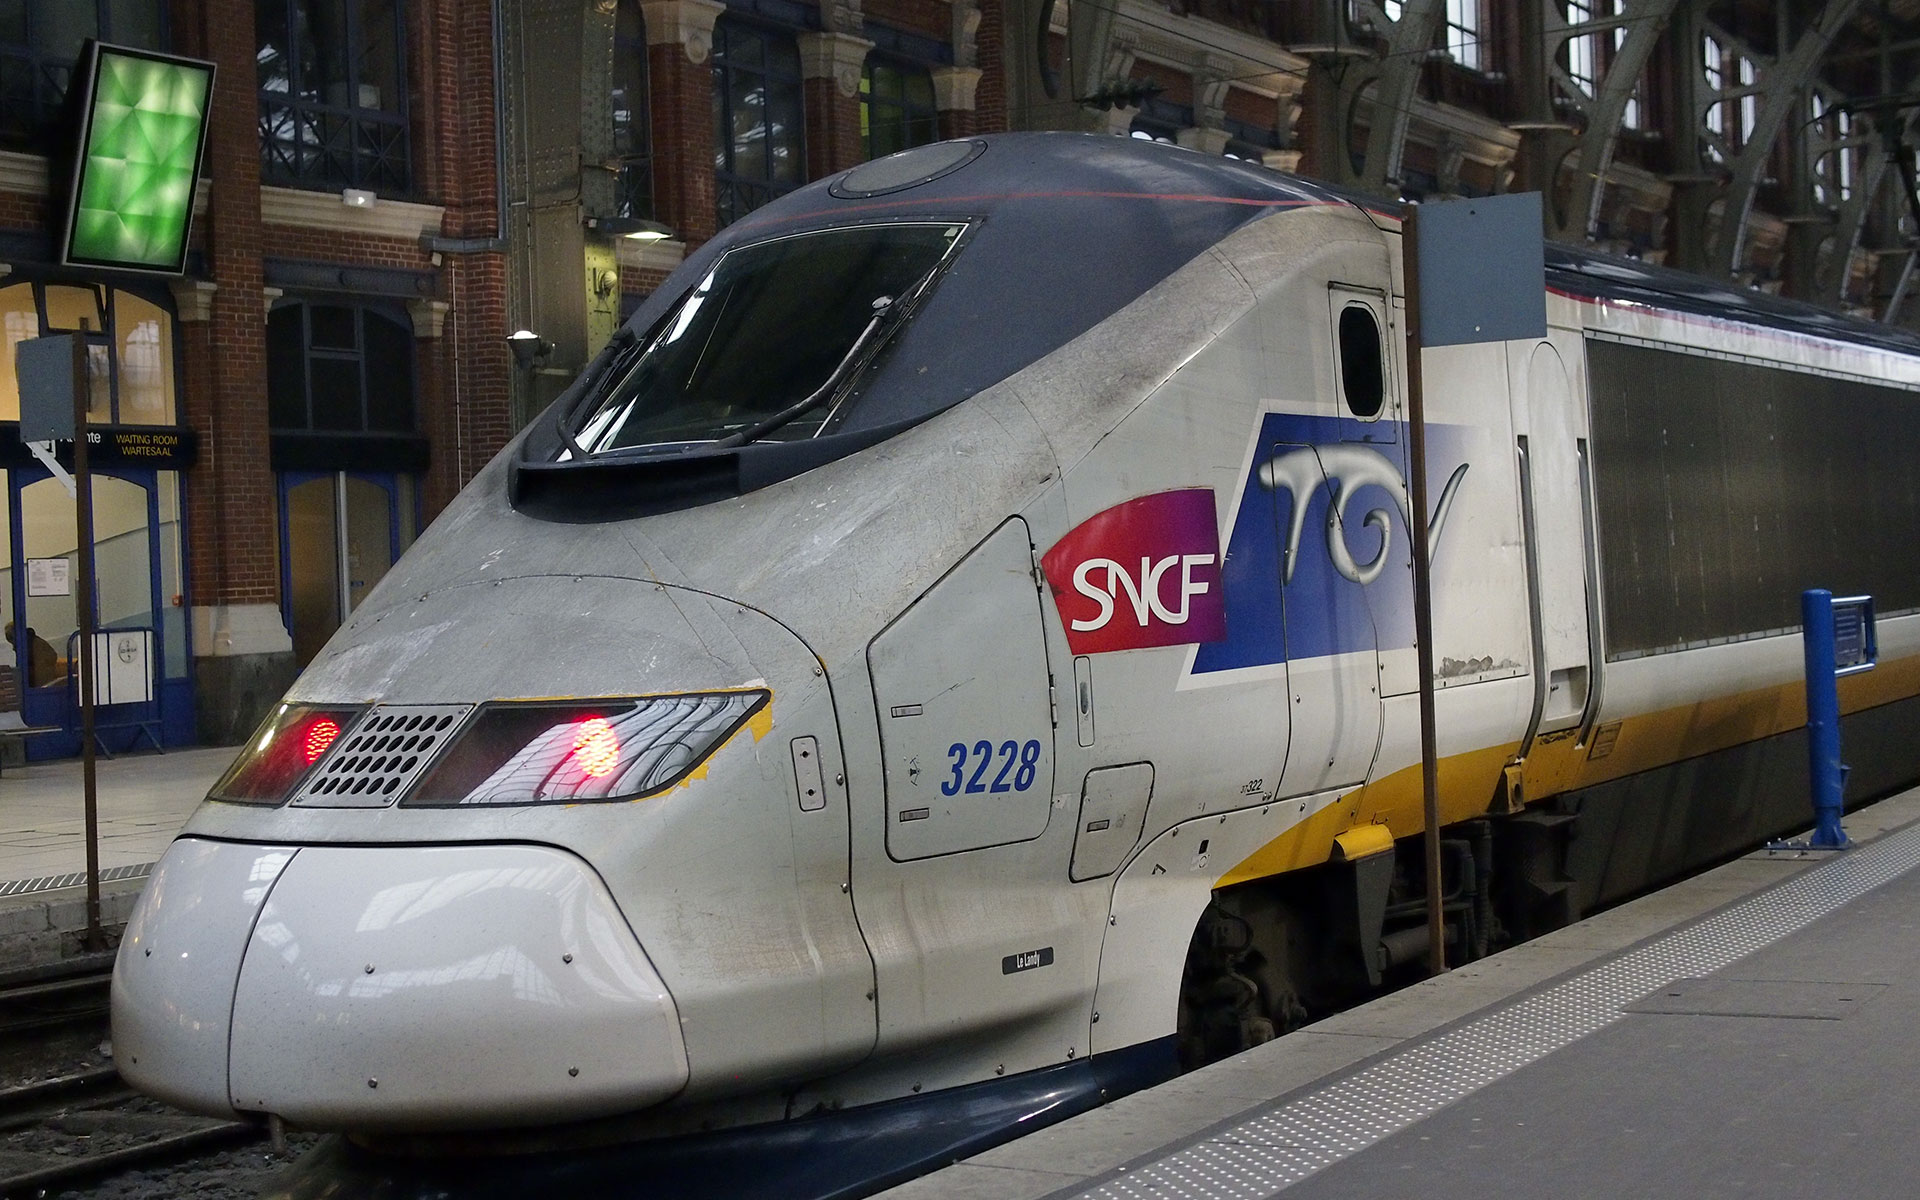 A TGV train at Gare de Lille Flandres station (© hidden europe).